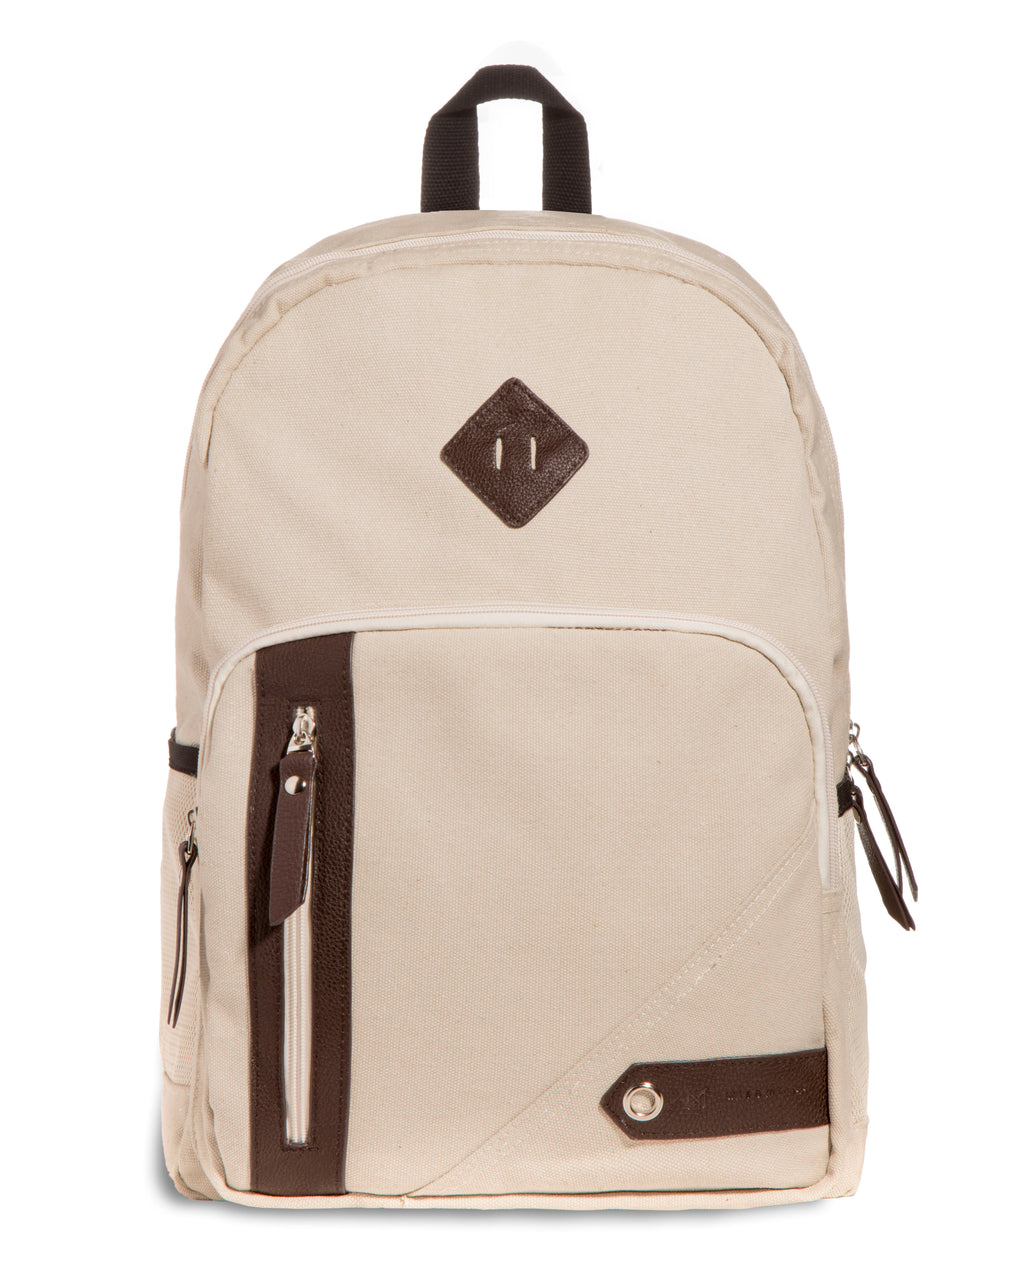 Routine Backpack - Khaki